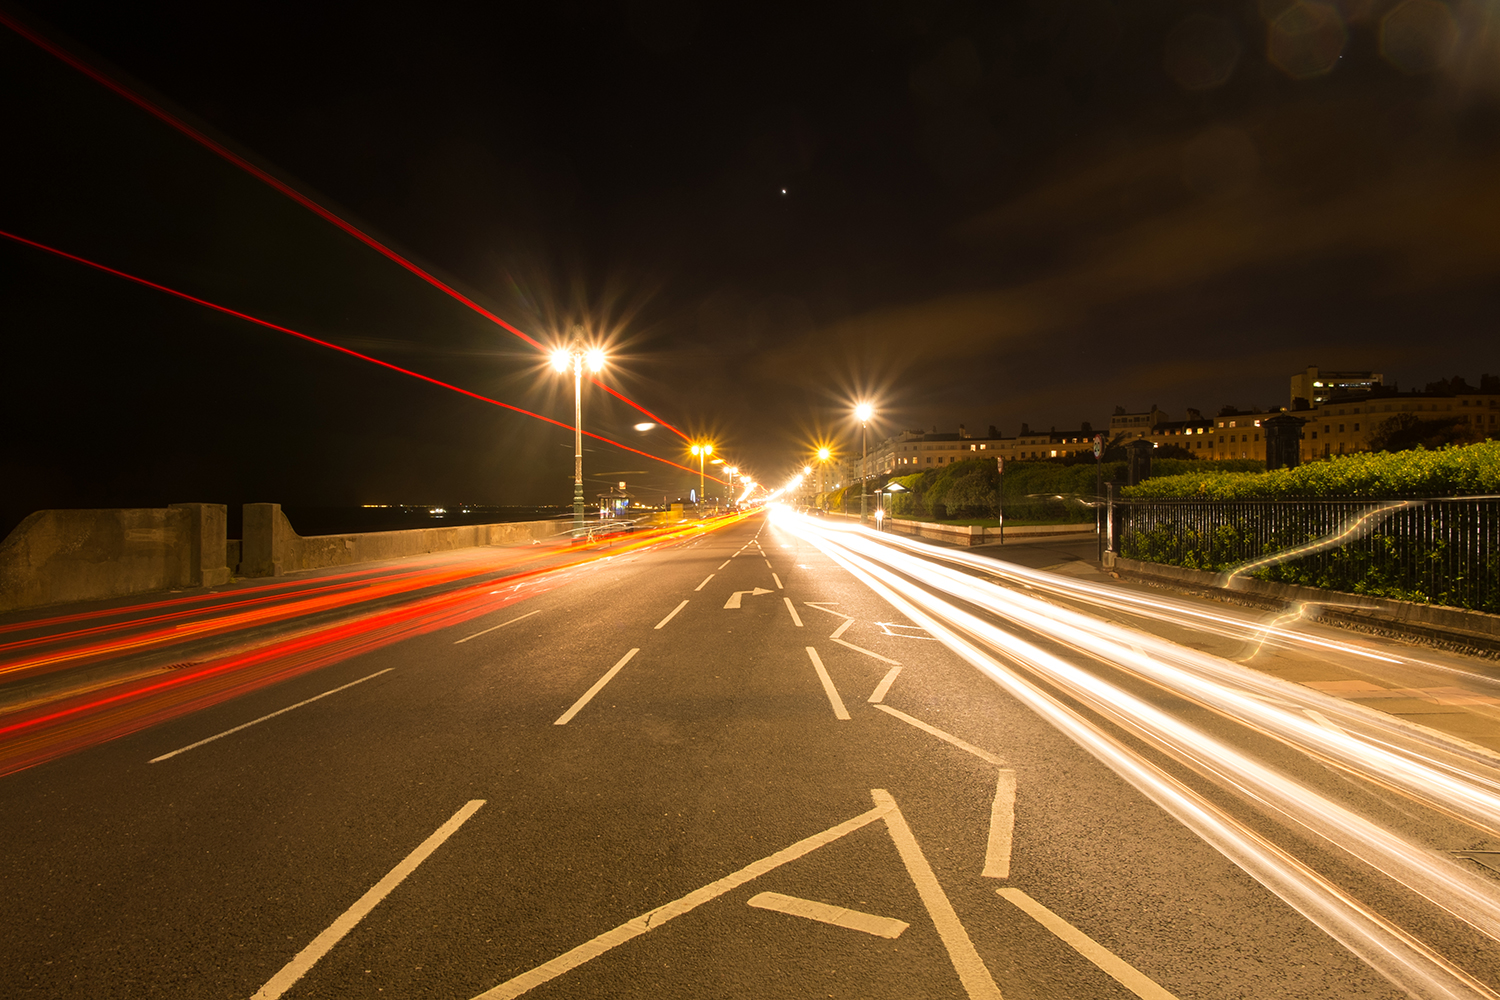 Streaks of light on a road caused by traffic  during a long exposure.